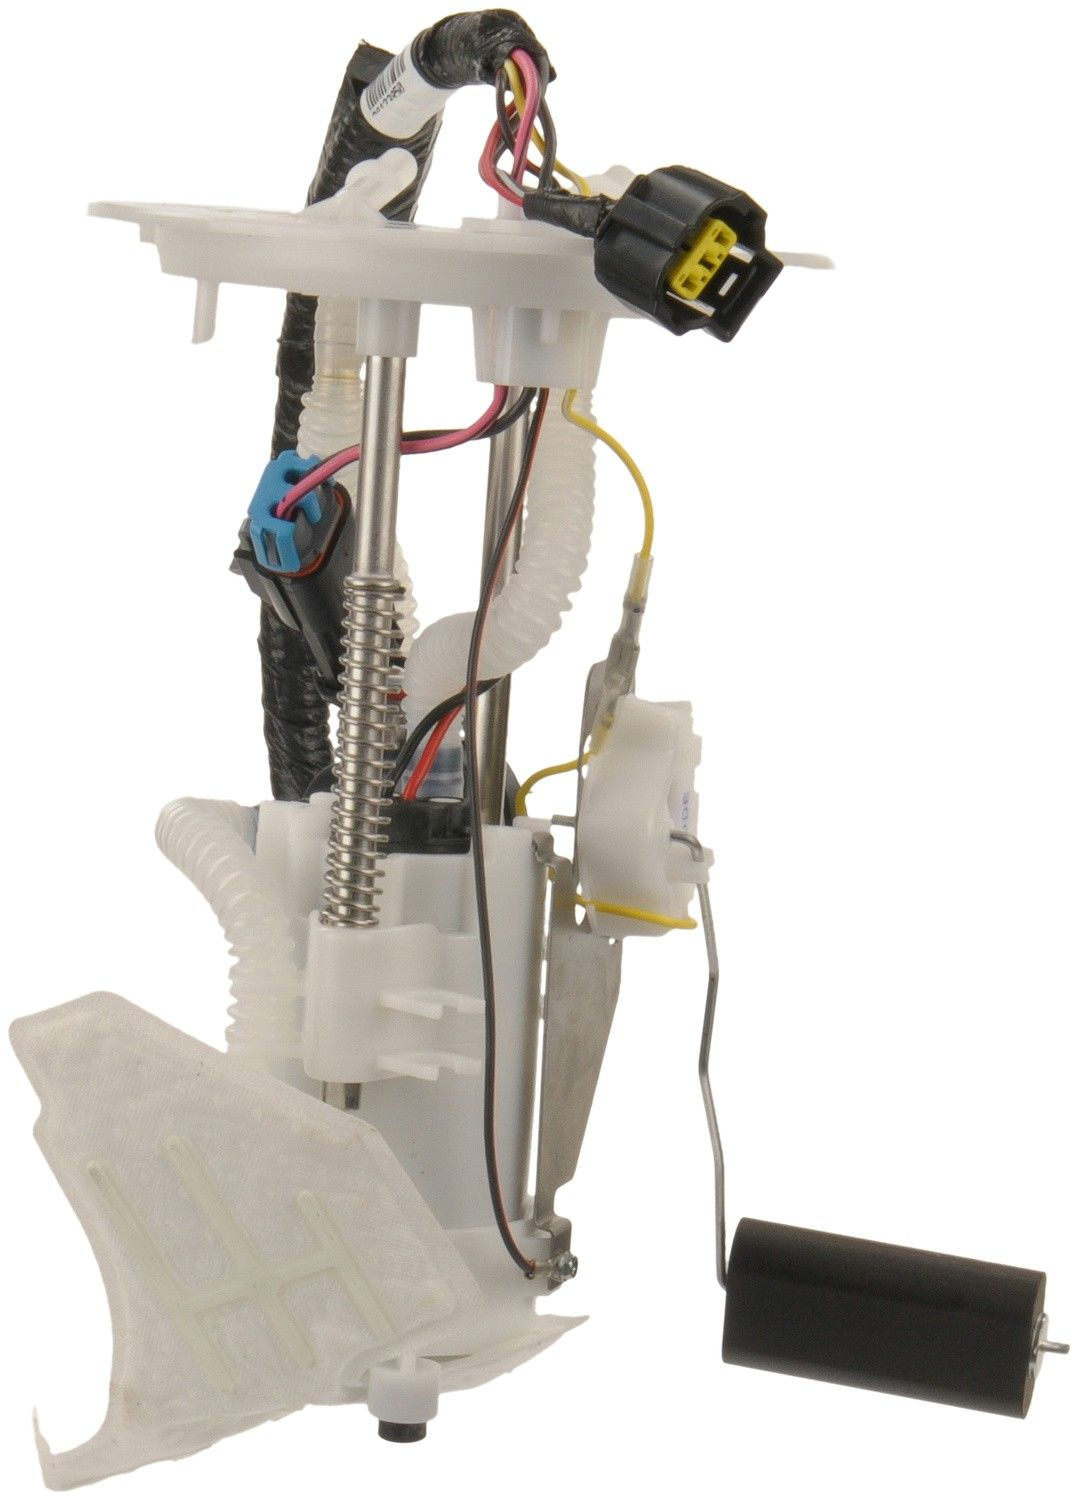 Ford Explorer Fuel Pump Module Assembly Replacement Airtex 1994 Wiring 2003 6 Cyl 40l Bosch 67199 Actual Oe Part To 11 2002